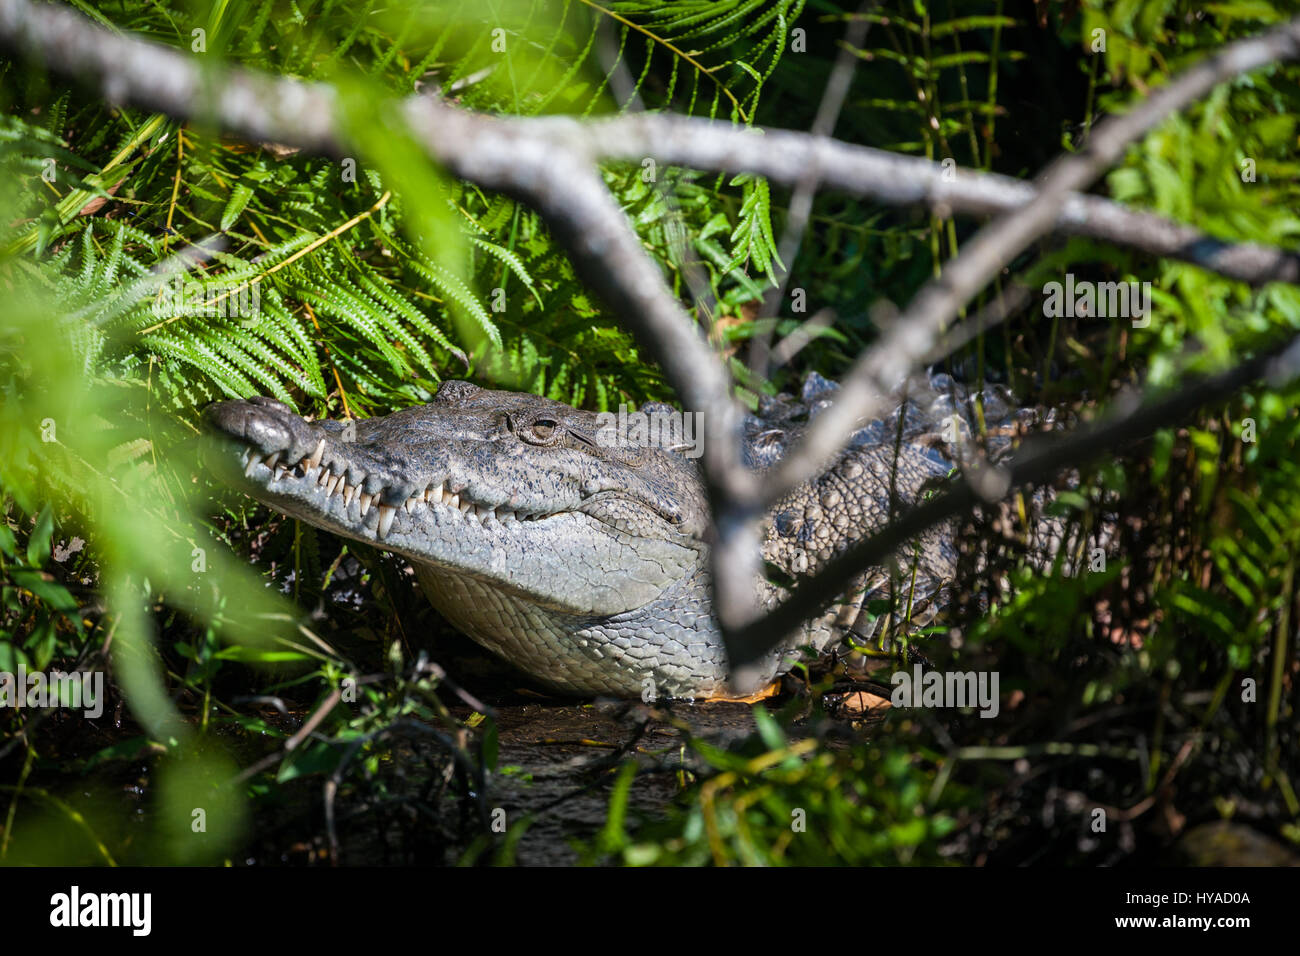 A large, wild crocodile along the river in the Tovara Natural Reserve in San Blas, Mexico. - Stock Image